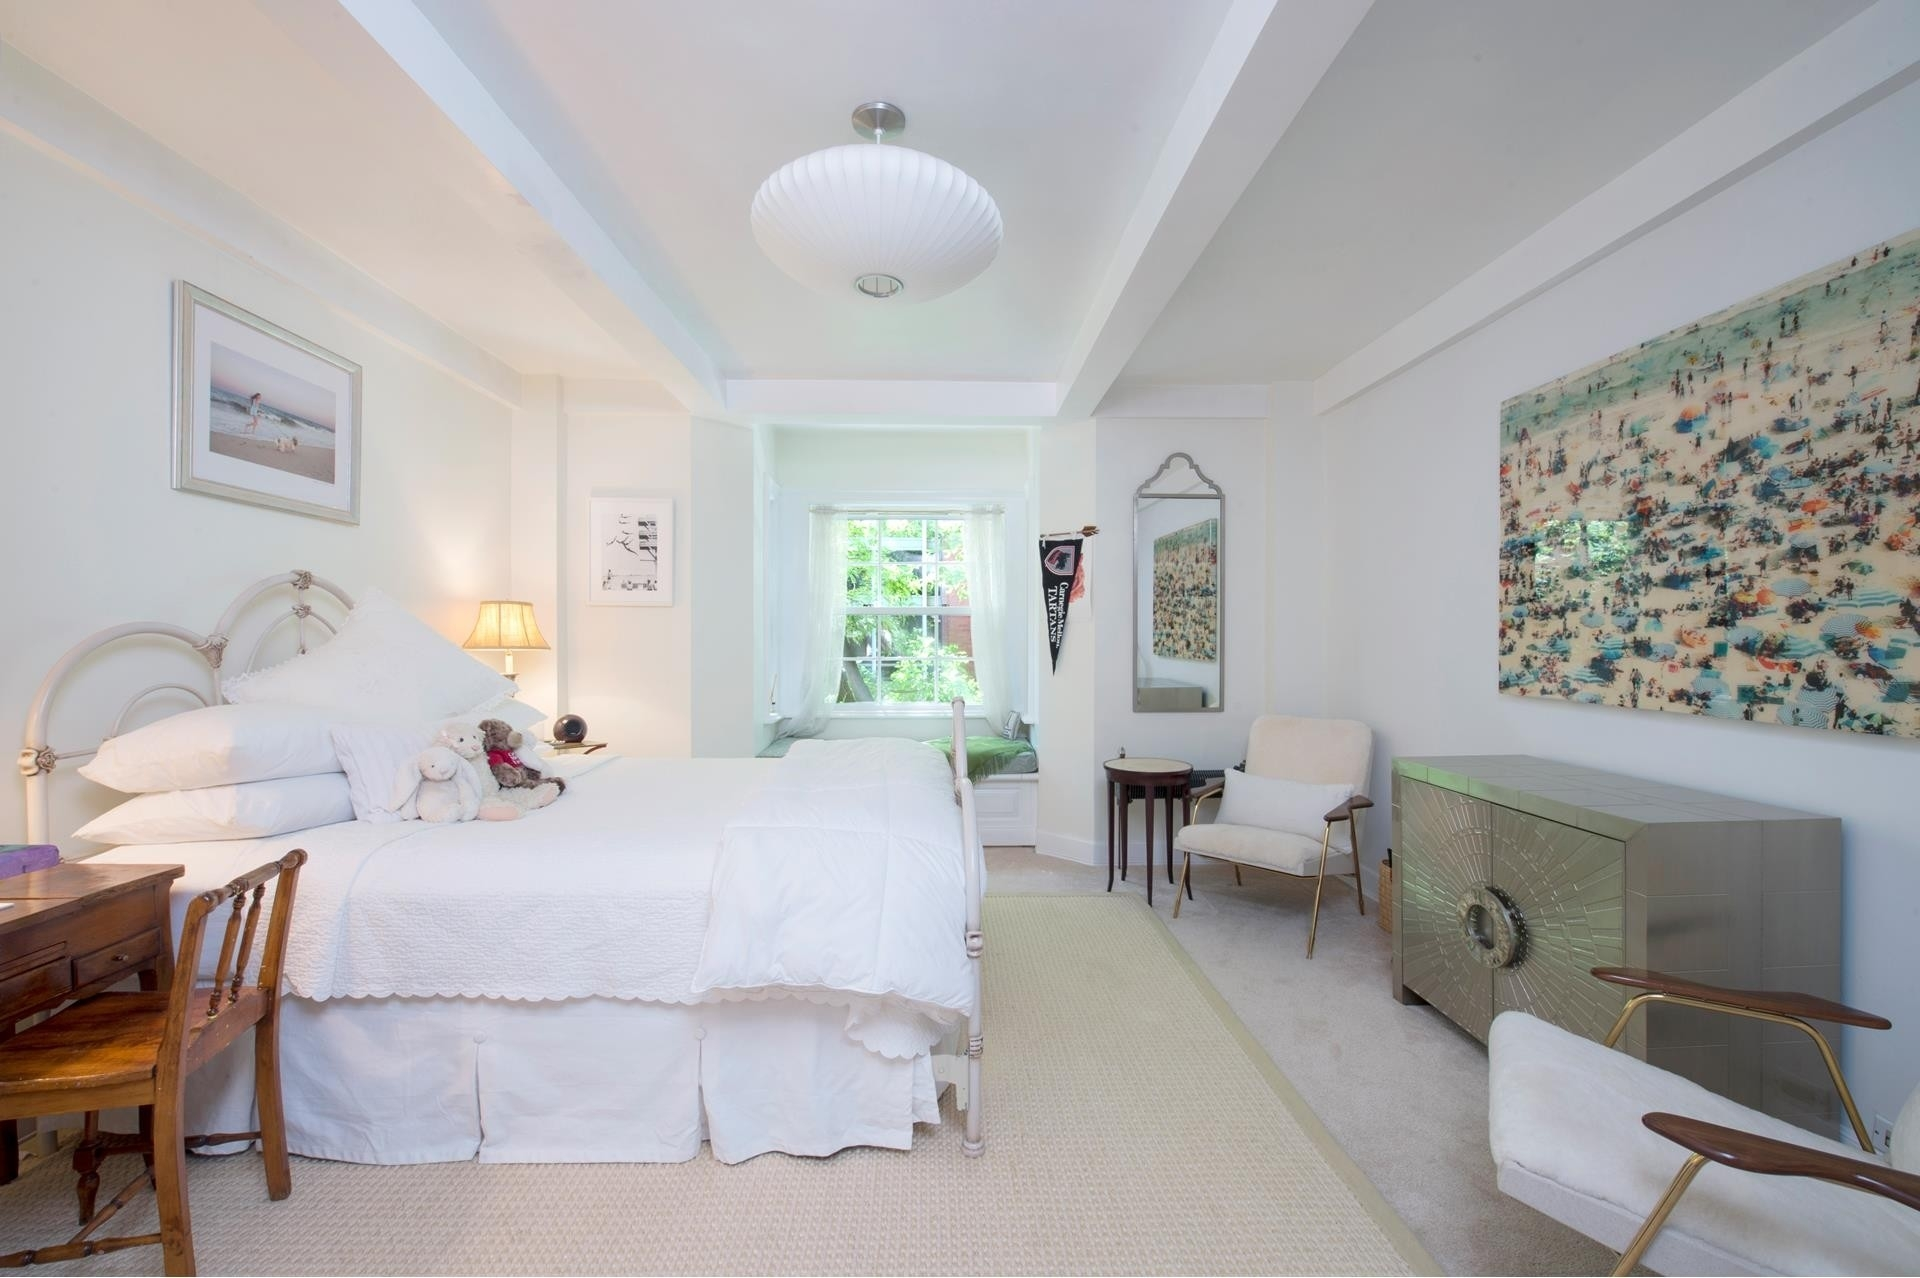 7. Co-op Properties for Sale at Colonial Studios, 39 W 67TH ST , 401402301 Lincoln Square, New York, NY 10023